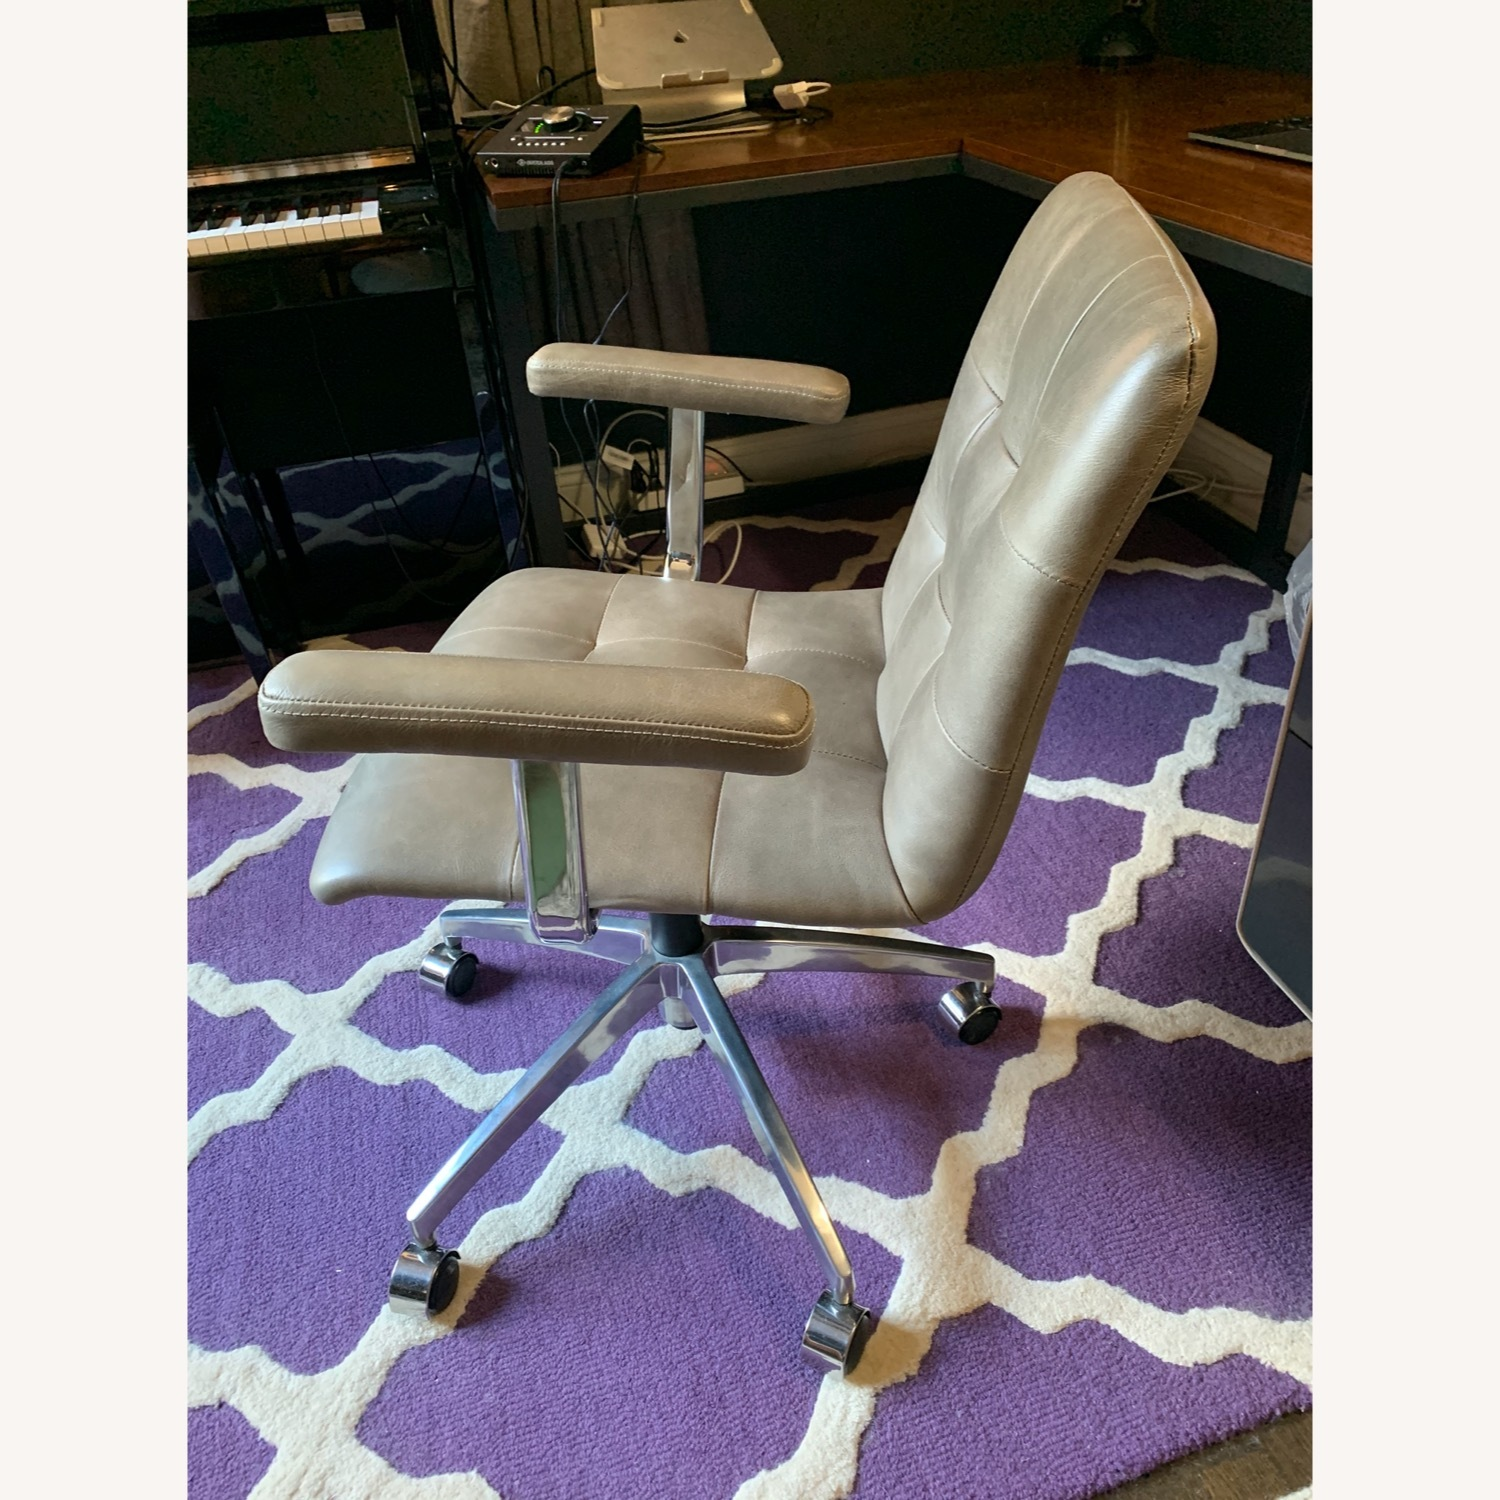 Crate and Barrel Leather Office Chair - image-2